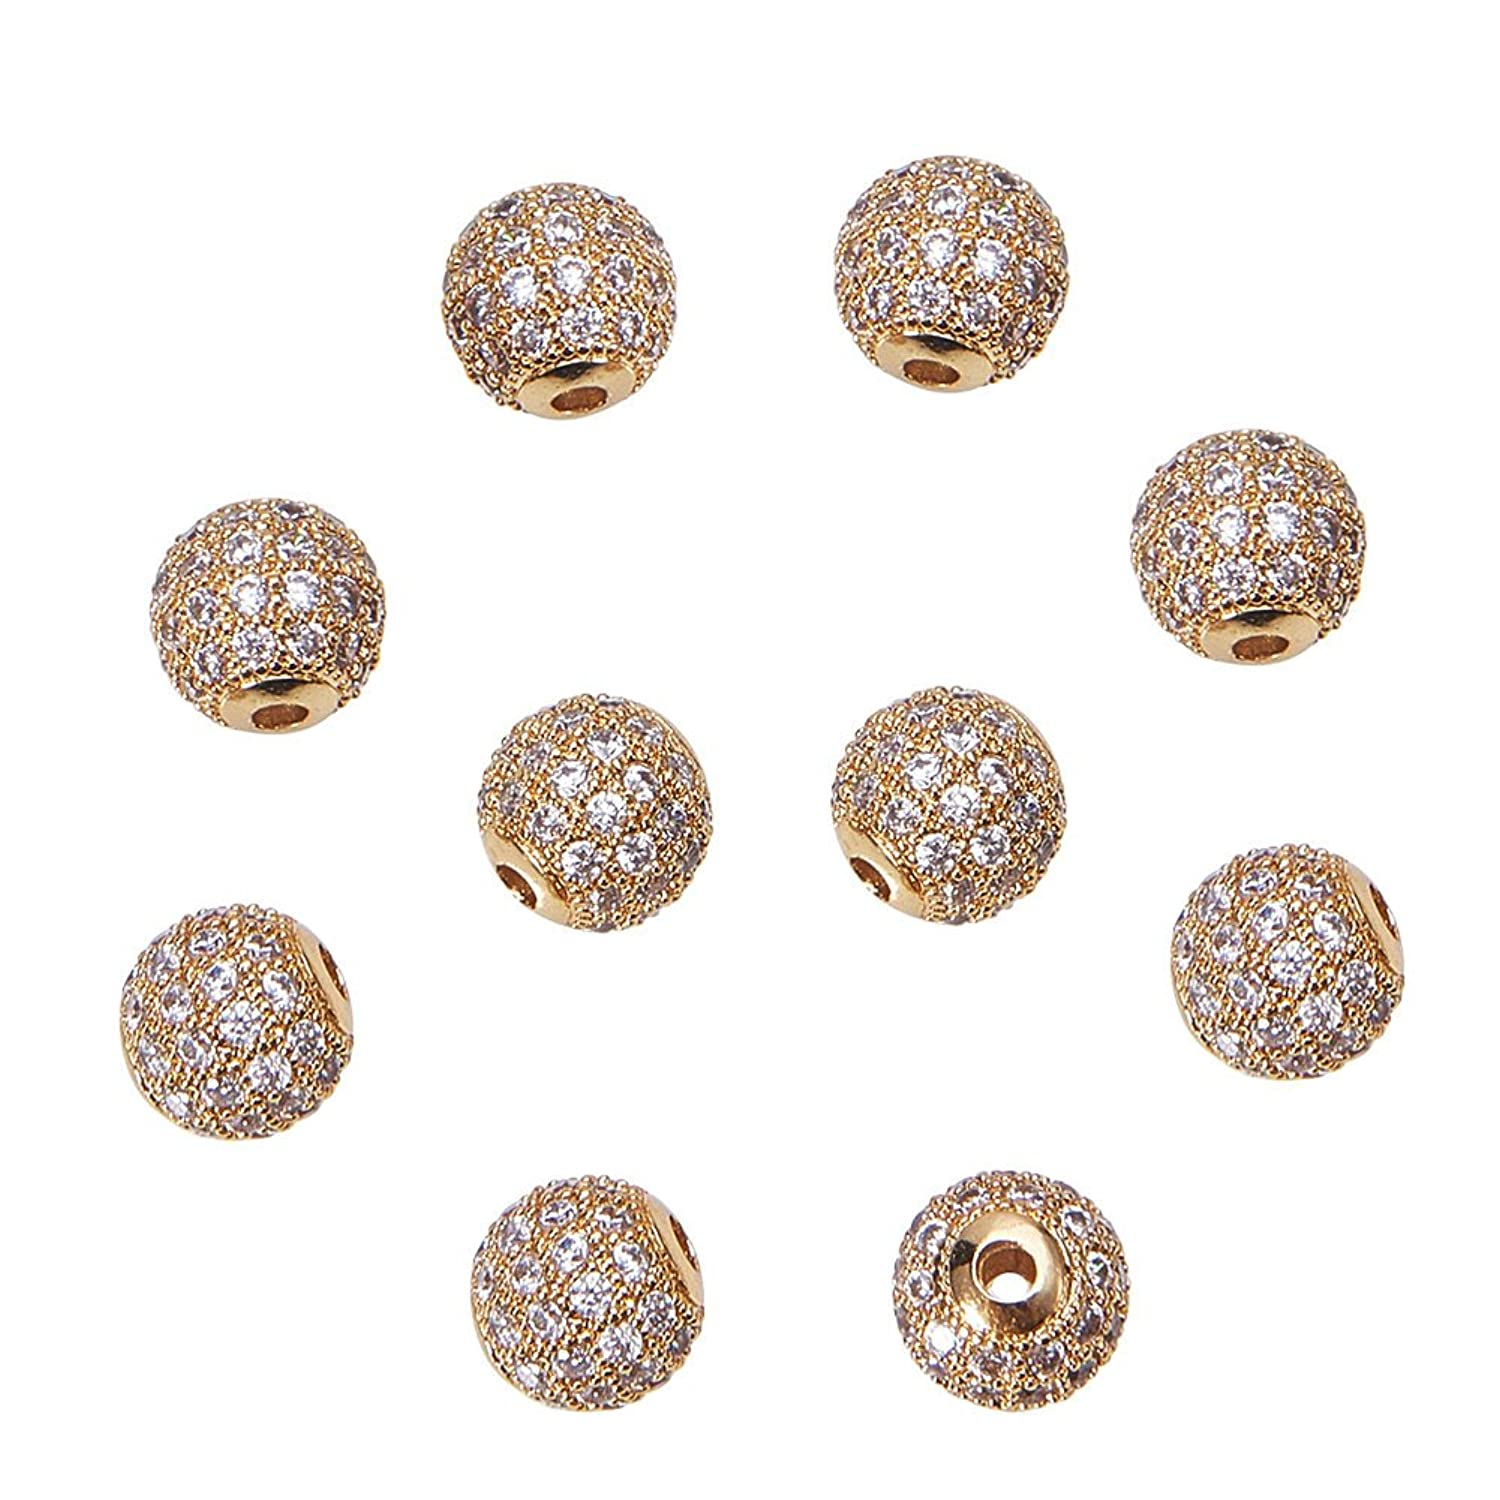 LUXPACK 10pcs 8mm Brass Clear Gemstones Cubic Zirconia CZ Stones Pave Micro Setting Disco Ball Spacer Beads, Round Bracelet Connector Charms Beads for Jewelry Making, Gold